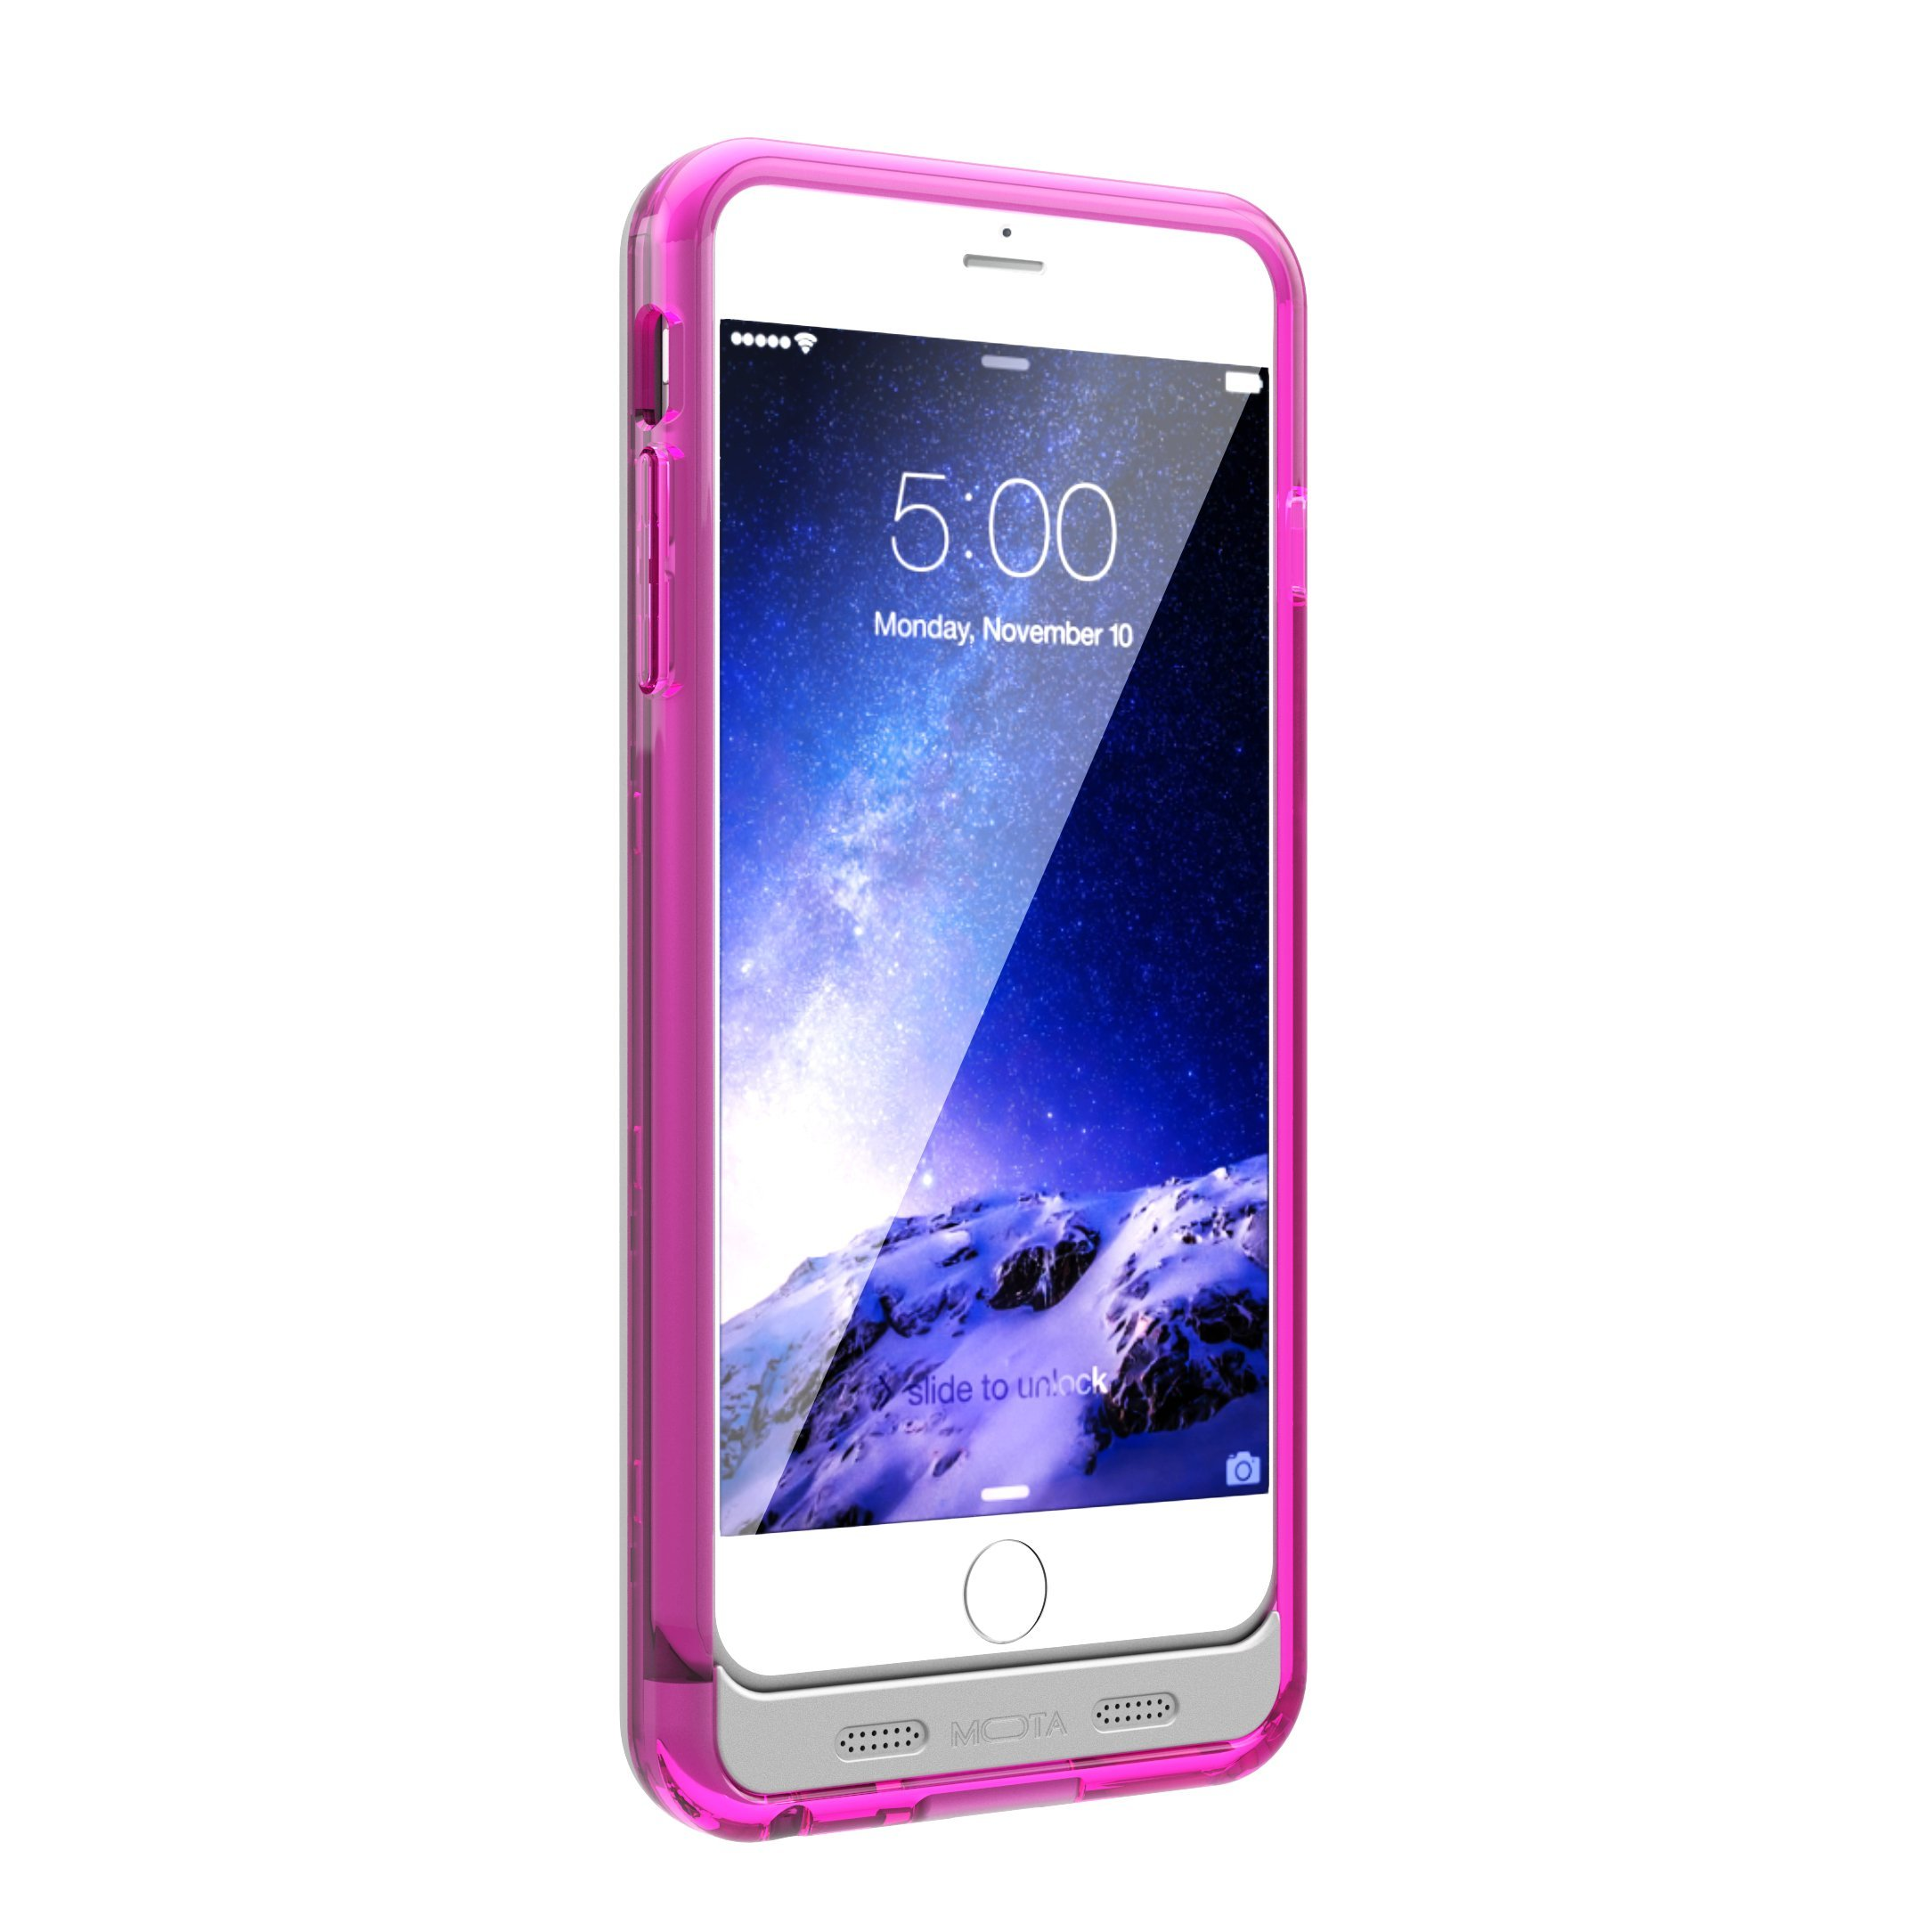 TAMO iPhone 6/6s Extended Battery Case, TAMO 2400 mAh dual-purposed Ultra-Slim Protective Extended Battery Case - Pink - Battery - Retail Packaging - Pink by TAMO (Image #9)